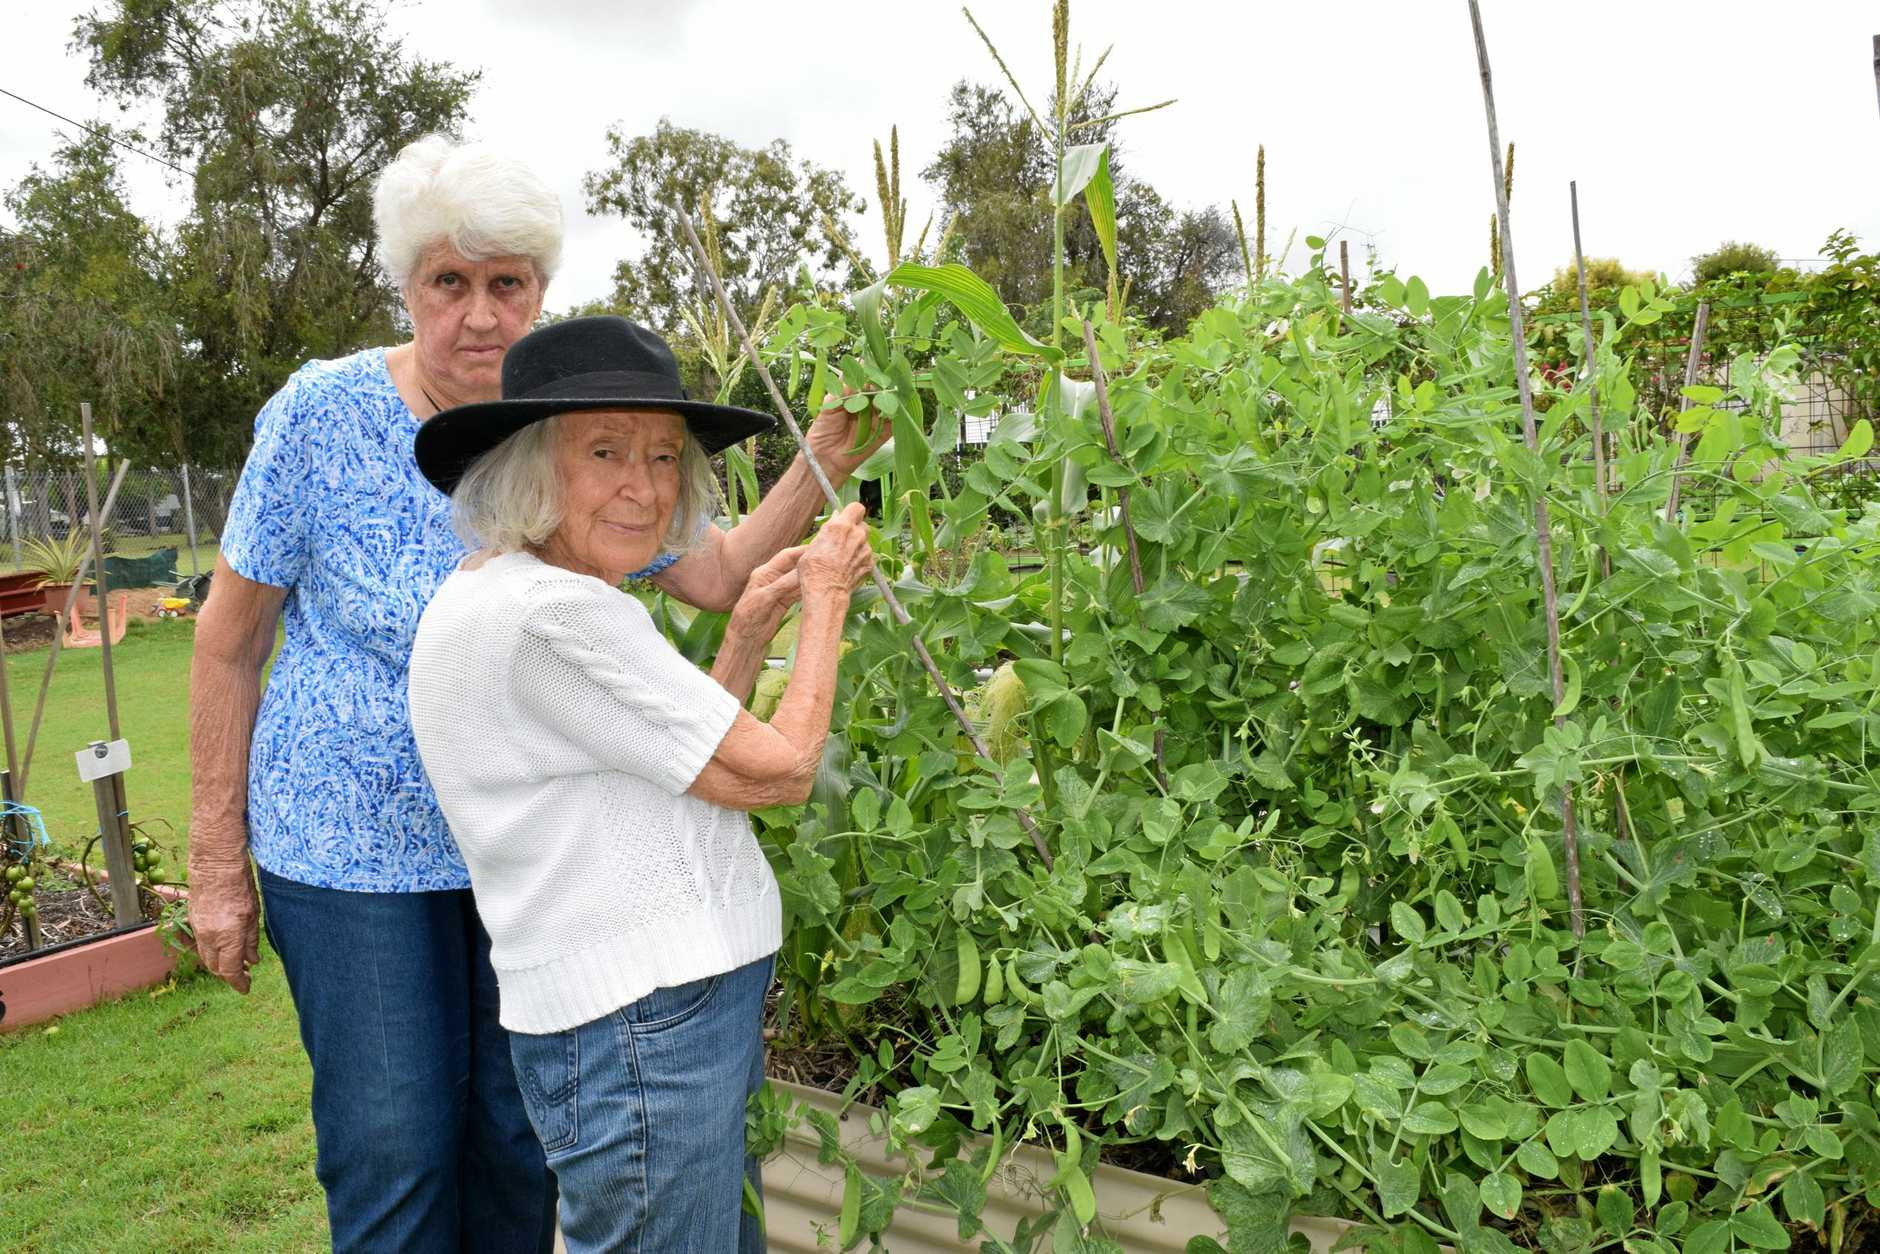 GARDENER'S WOES: Lupton Park Community Garden committee members Dot Leitner and Freda McLintock fear the garden may close because the committee is unable to afford a recent rates bill.